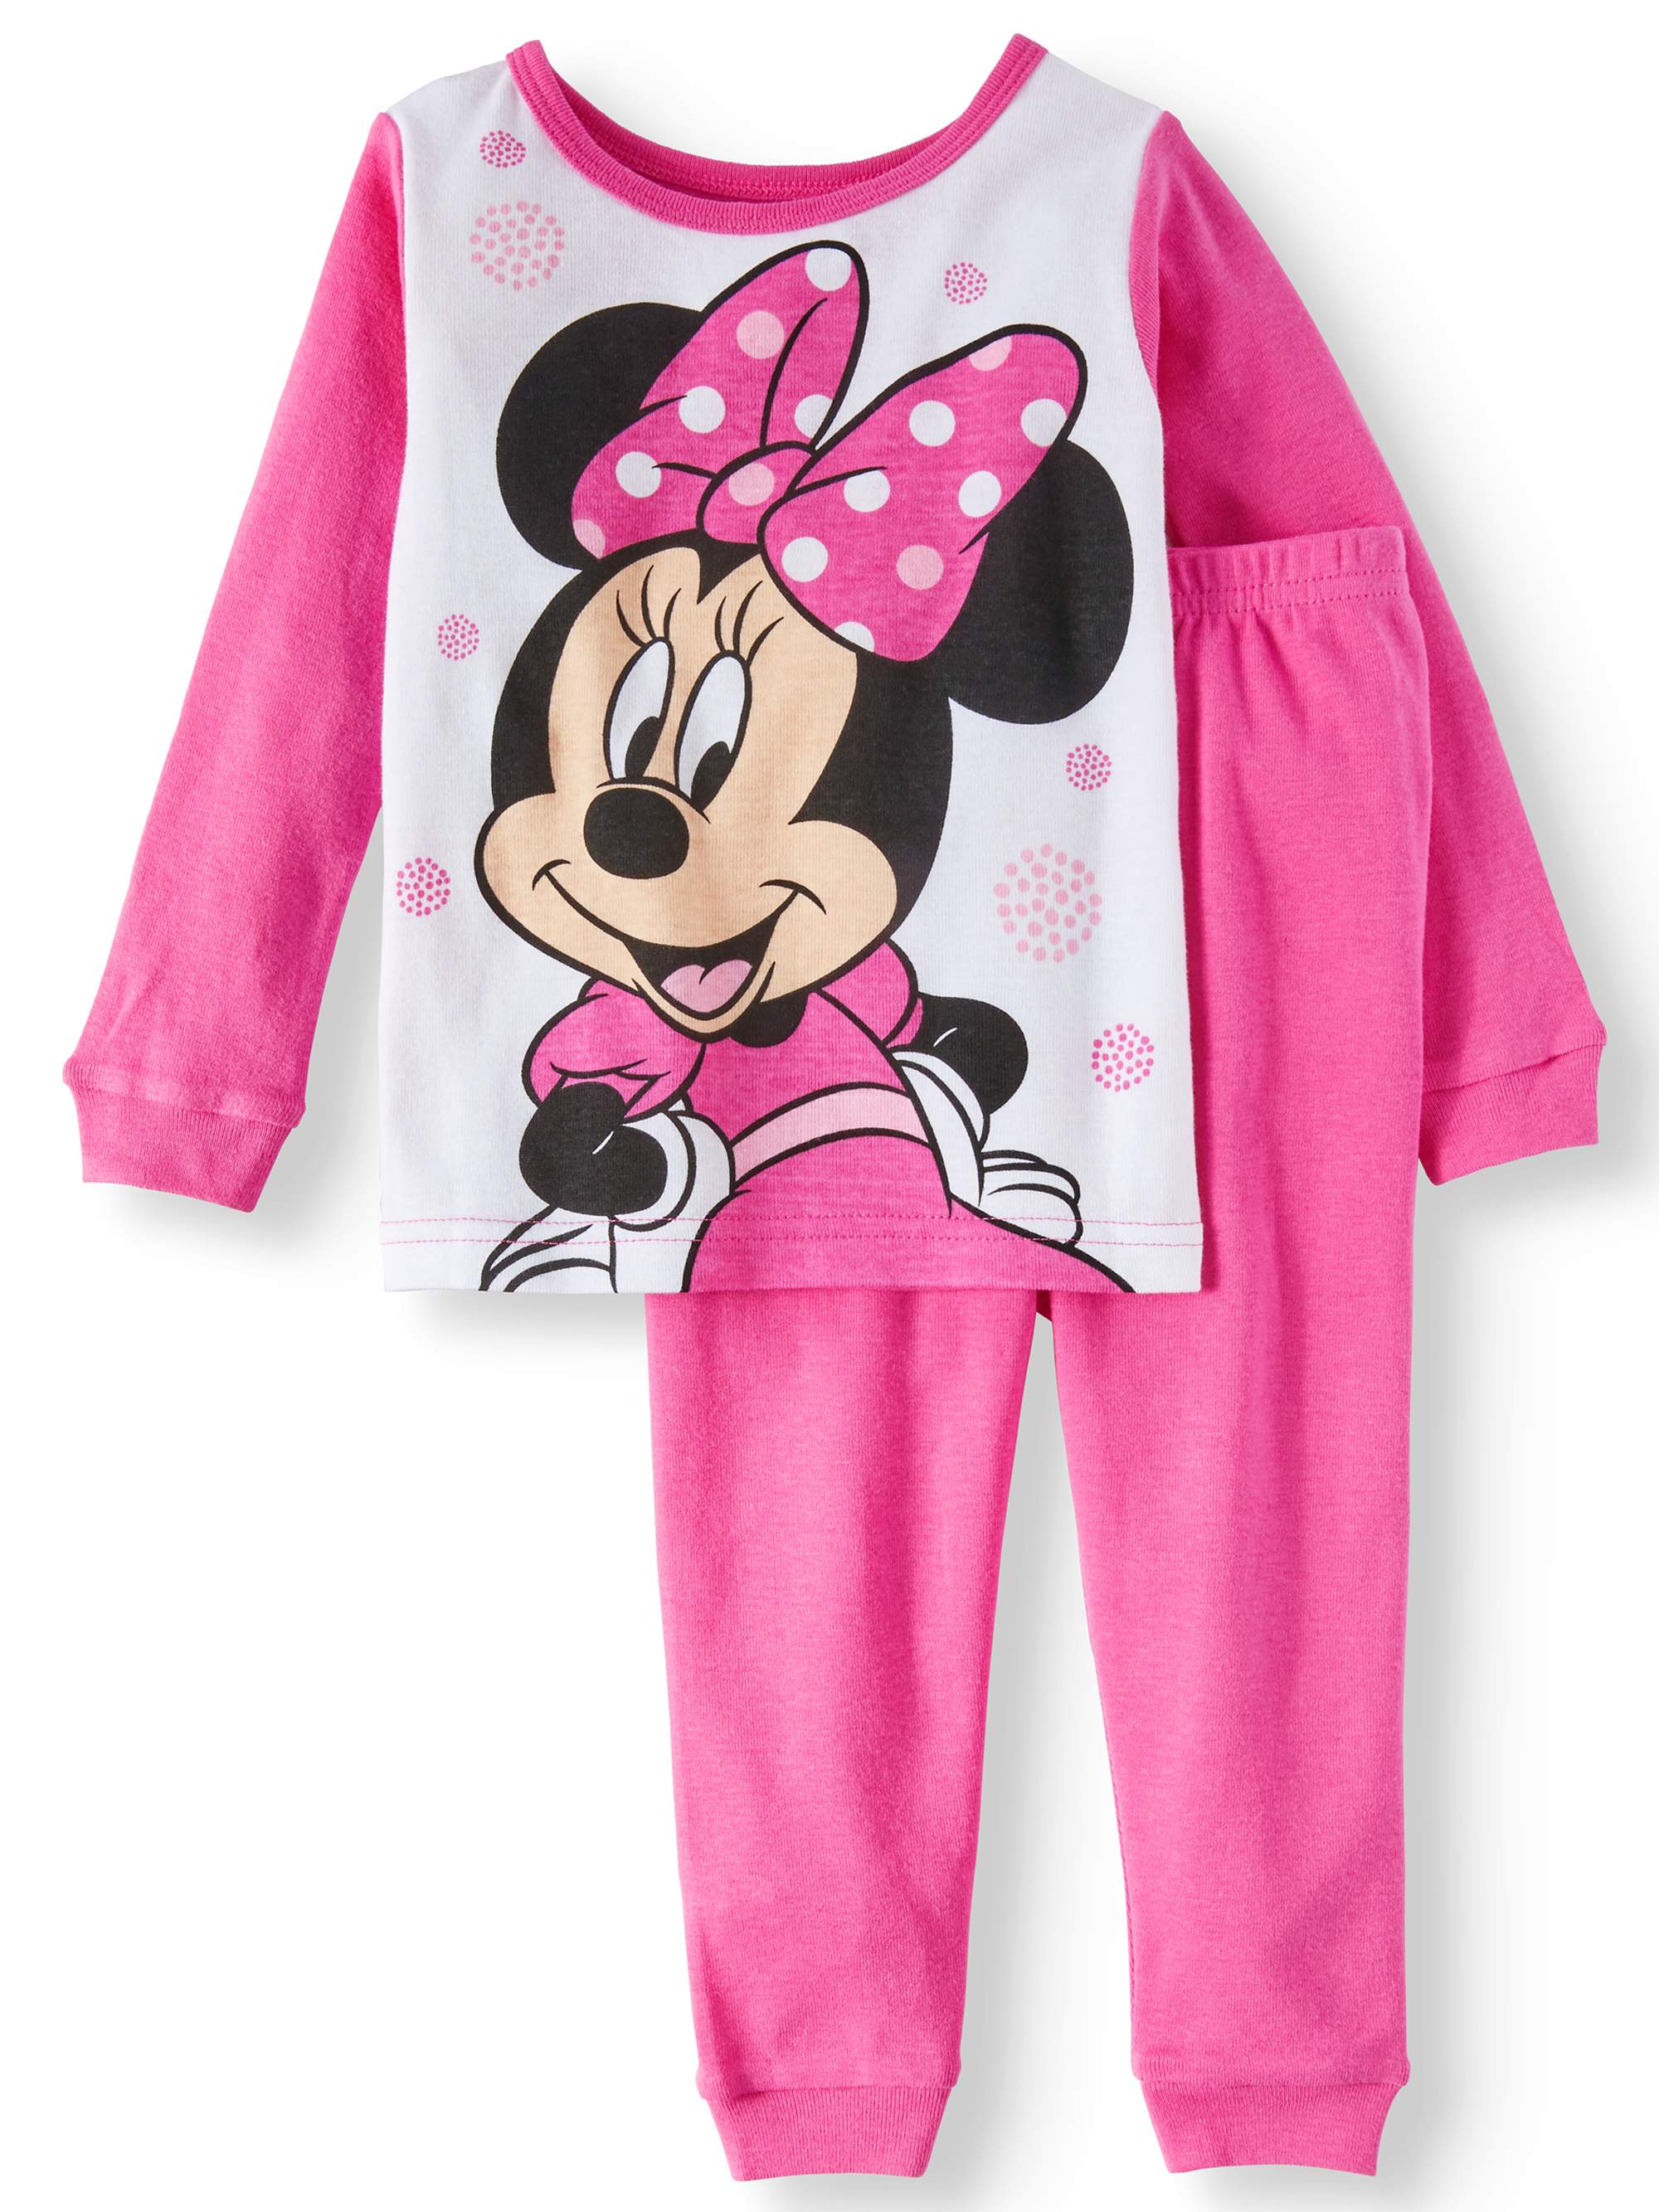 Minnie Mouse Pajamas, 2pc Set (Baby Girls & Toddler Girls)